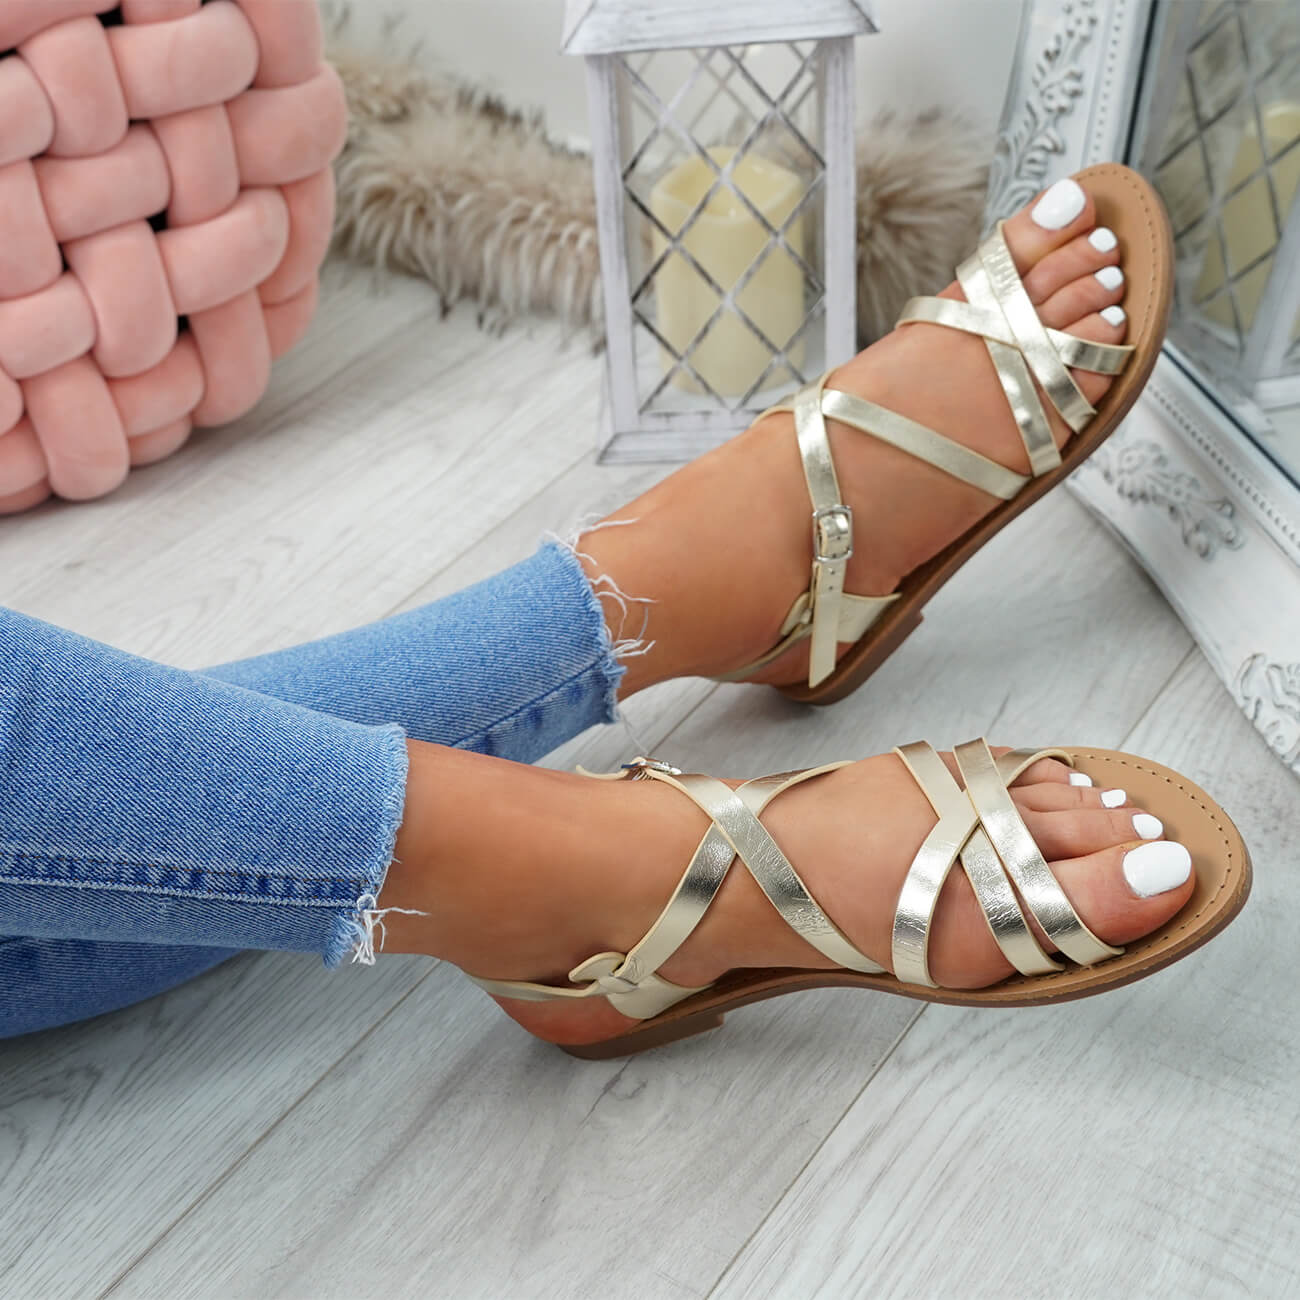 WOMENS-LADIES-ANKLE-STRAP-PEEP-TOE-BUCKLE-FLAT-SANDALS-SUMMER-CASUAL-SHOES thumbnail 19